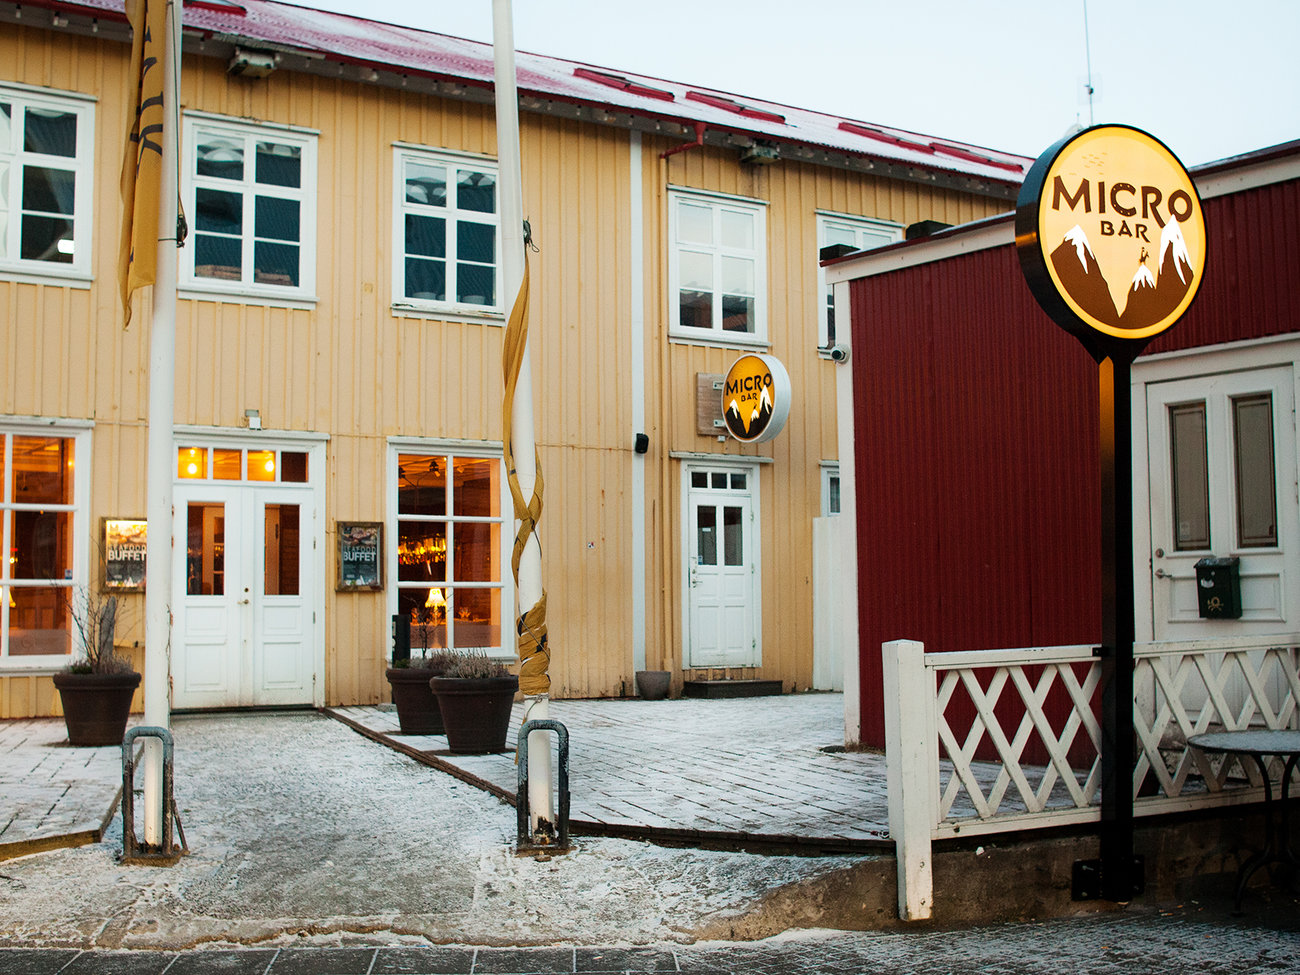 Micro Bar in Iceland